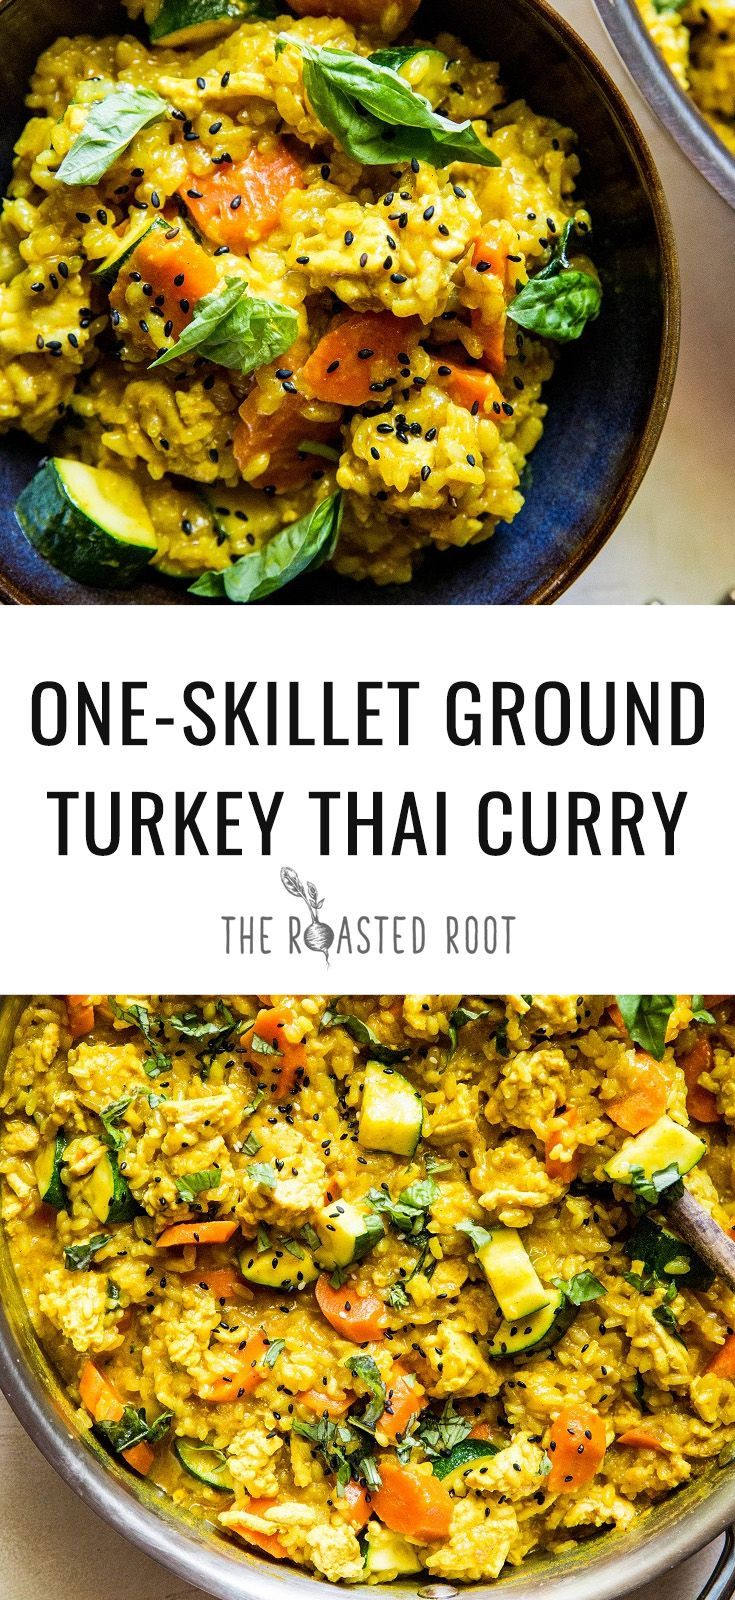 One-Skillet Ground Turkey Thai Curry with Rice